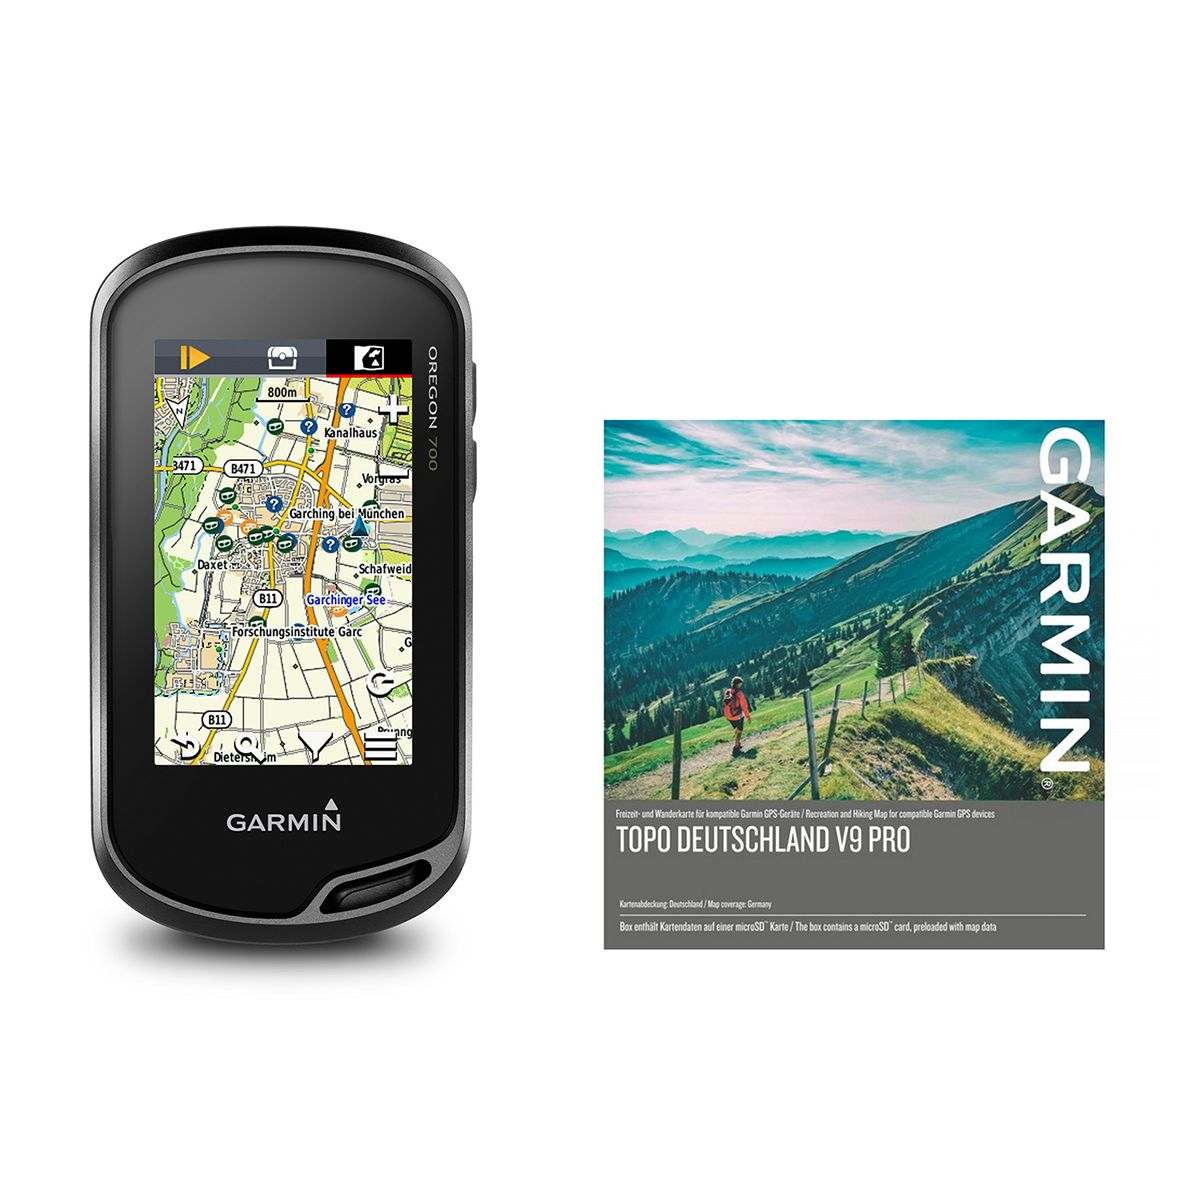 Oregon 700 GPS Device with Topo Germany V9 Pro Map